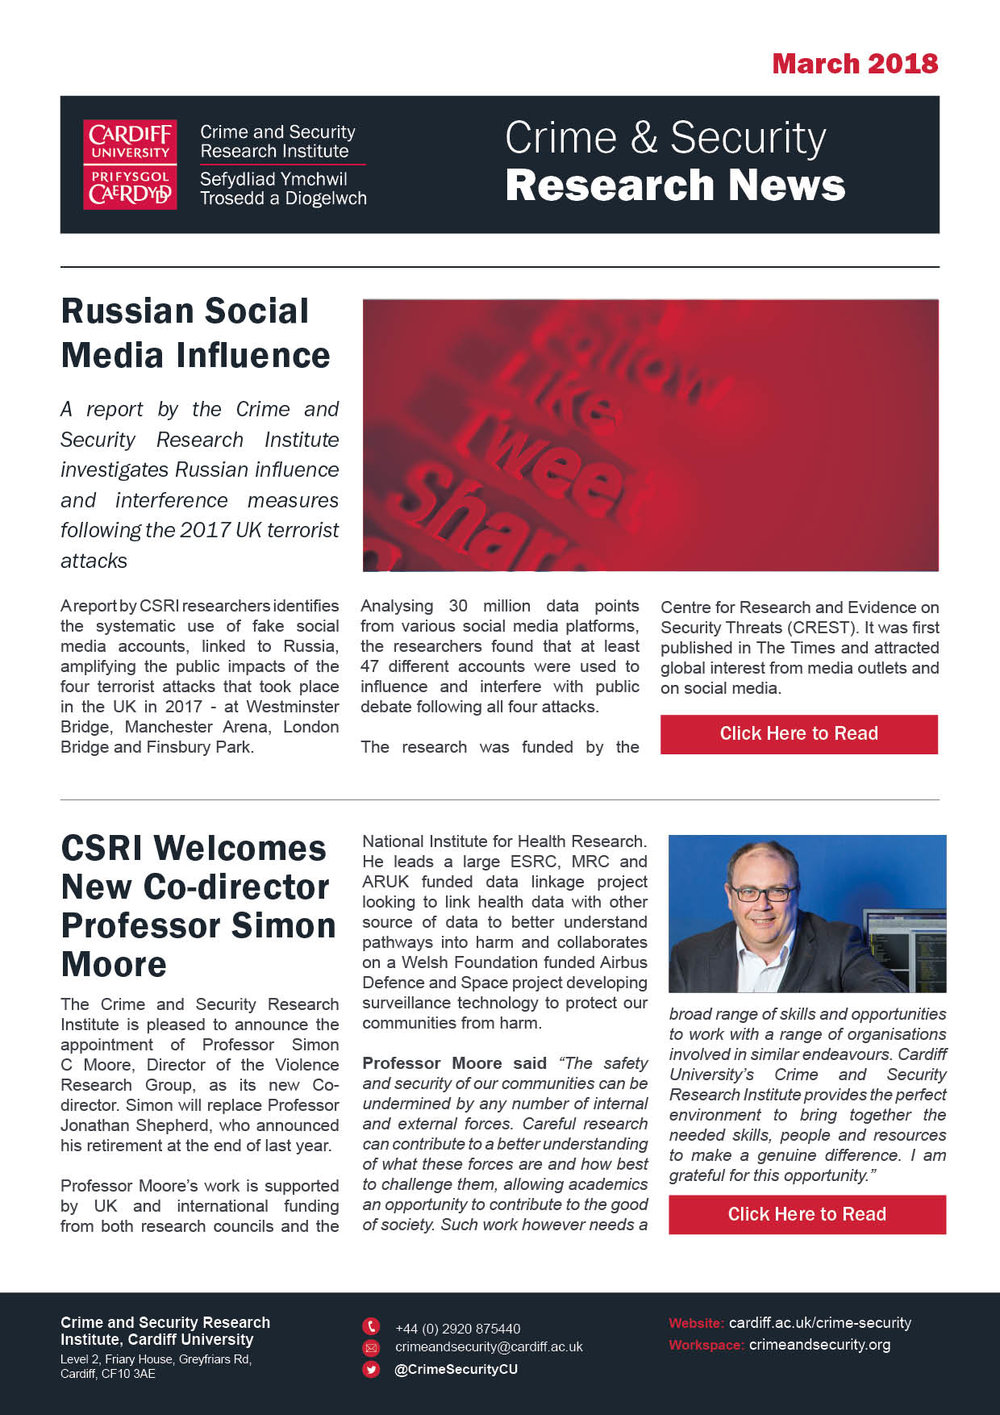 CSRI Newsletter Cover Image.jpg